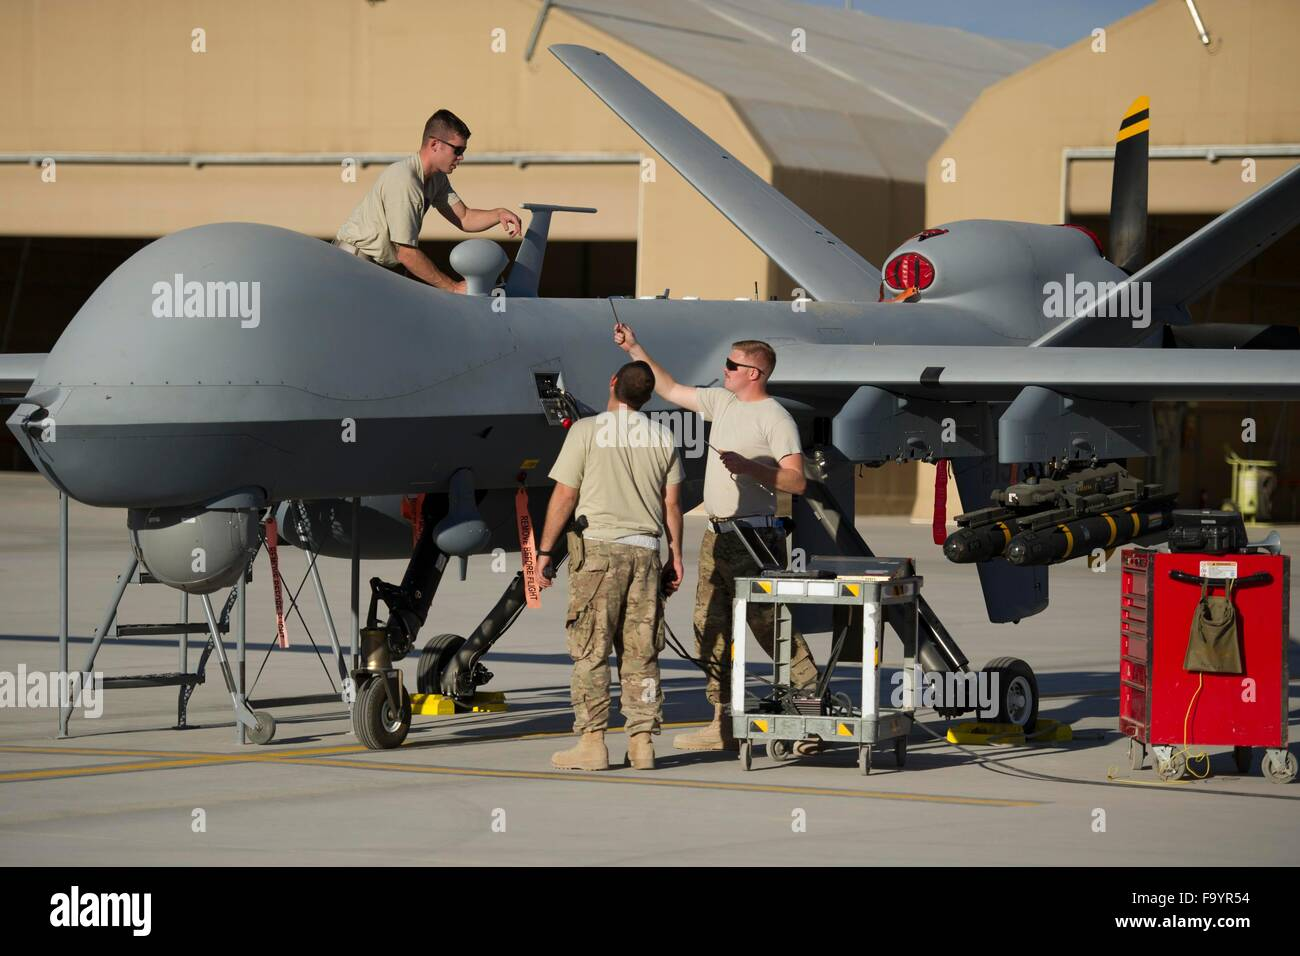 U.S. Air Force airmen with the 62nd Expeditionary Reconnaissance Squadron maintain the new extended range MQ-9 Reaper - Stock Image